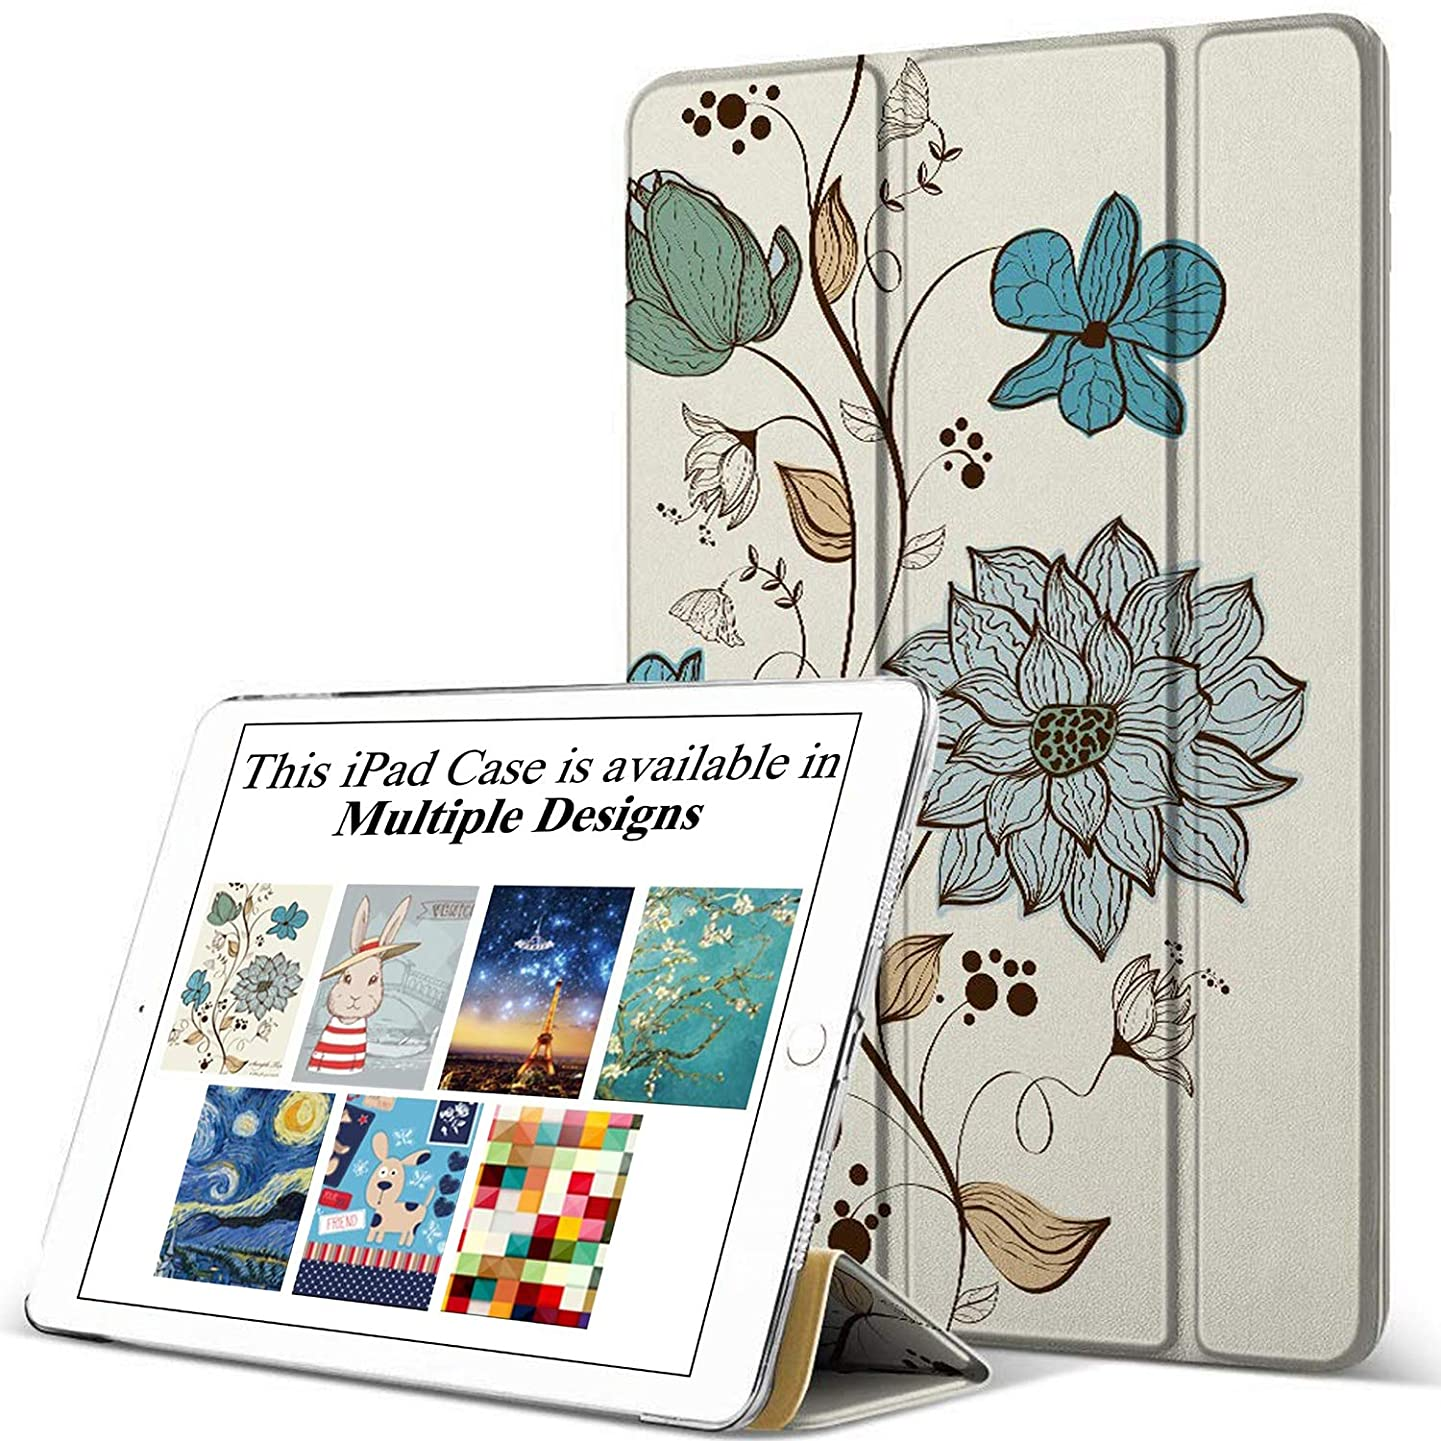 DuraSafe Case for iPad PRO 9.7 Inch 2016 [ A1673 A1674 A1675 ] Printed Smart Cover with Translucent Back, Auto Sleep/Wake - Watercolor Flowers (Trifold)